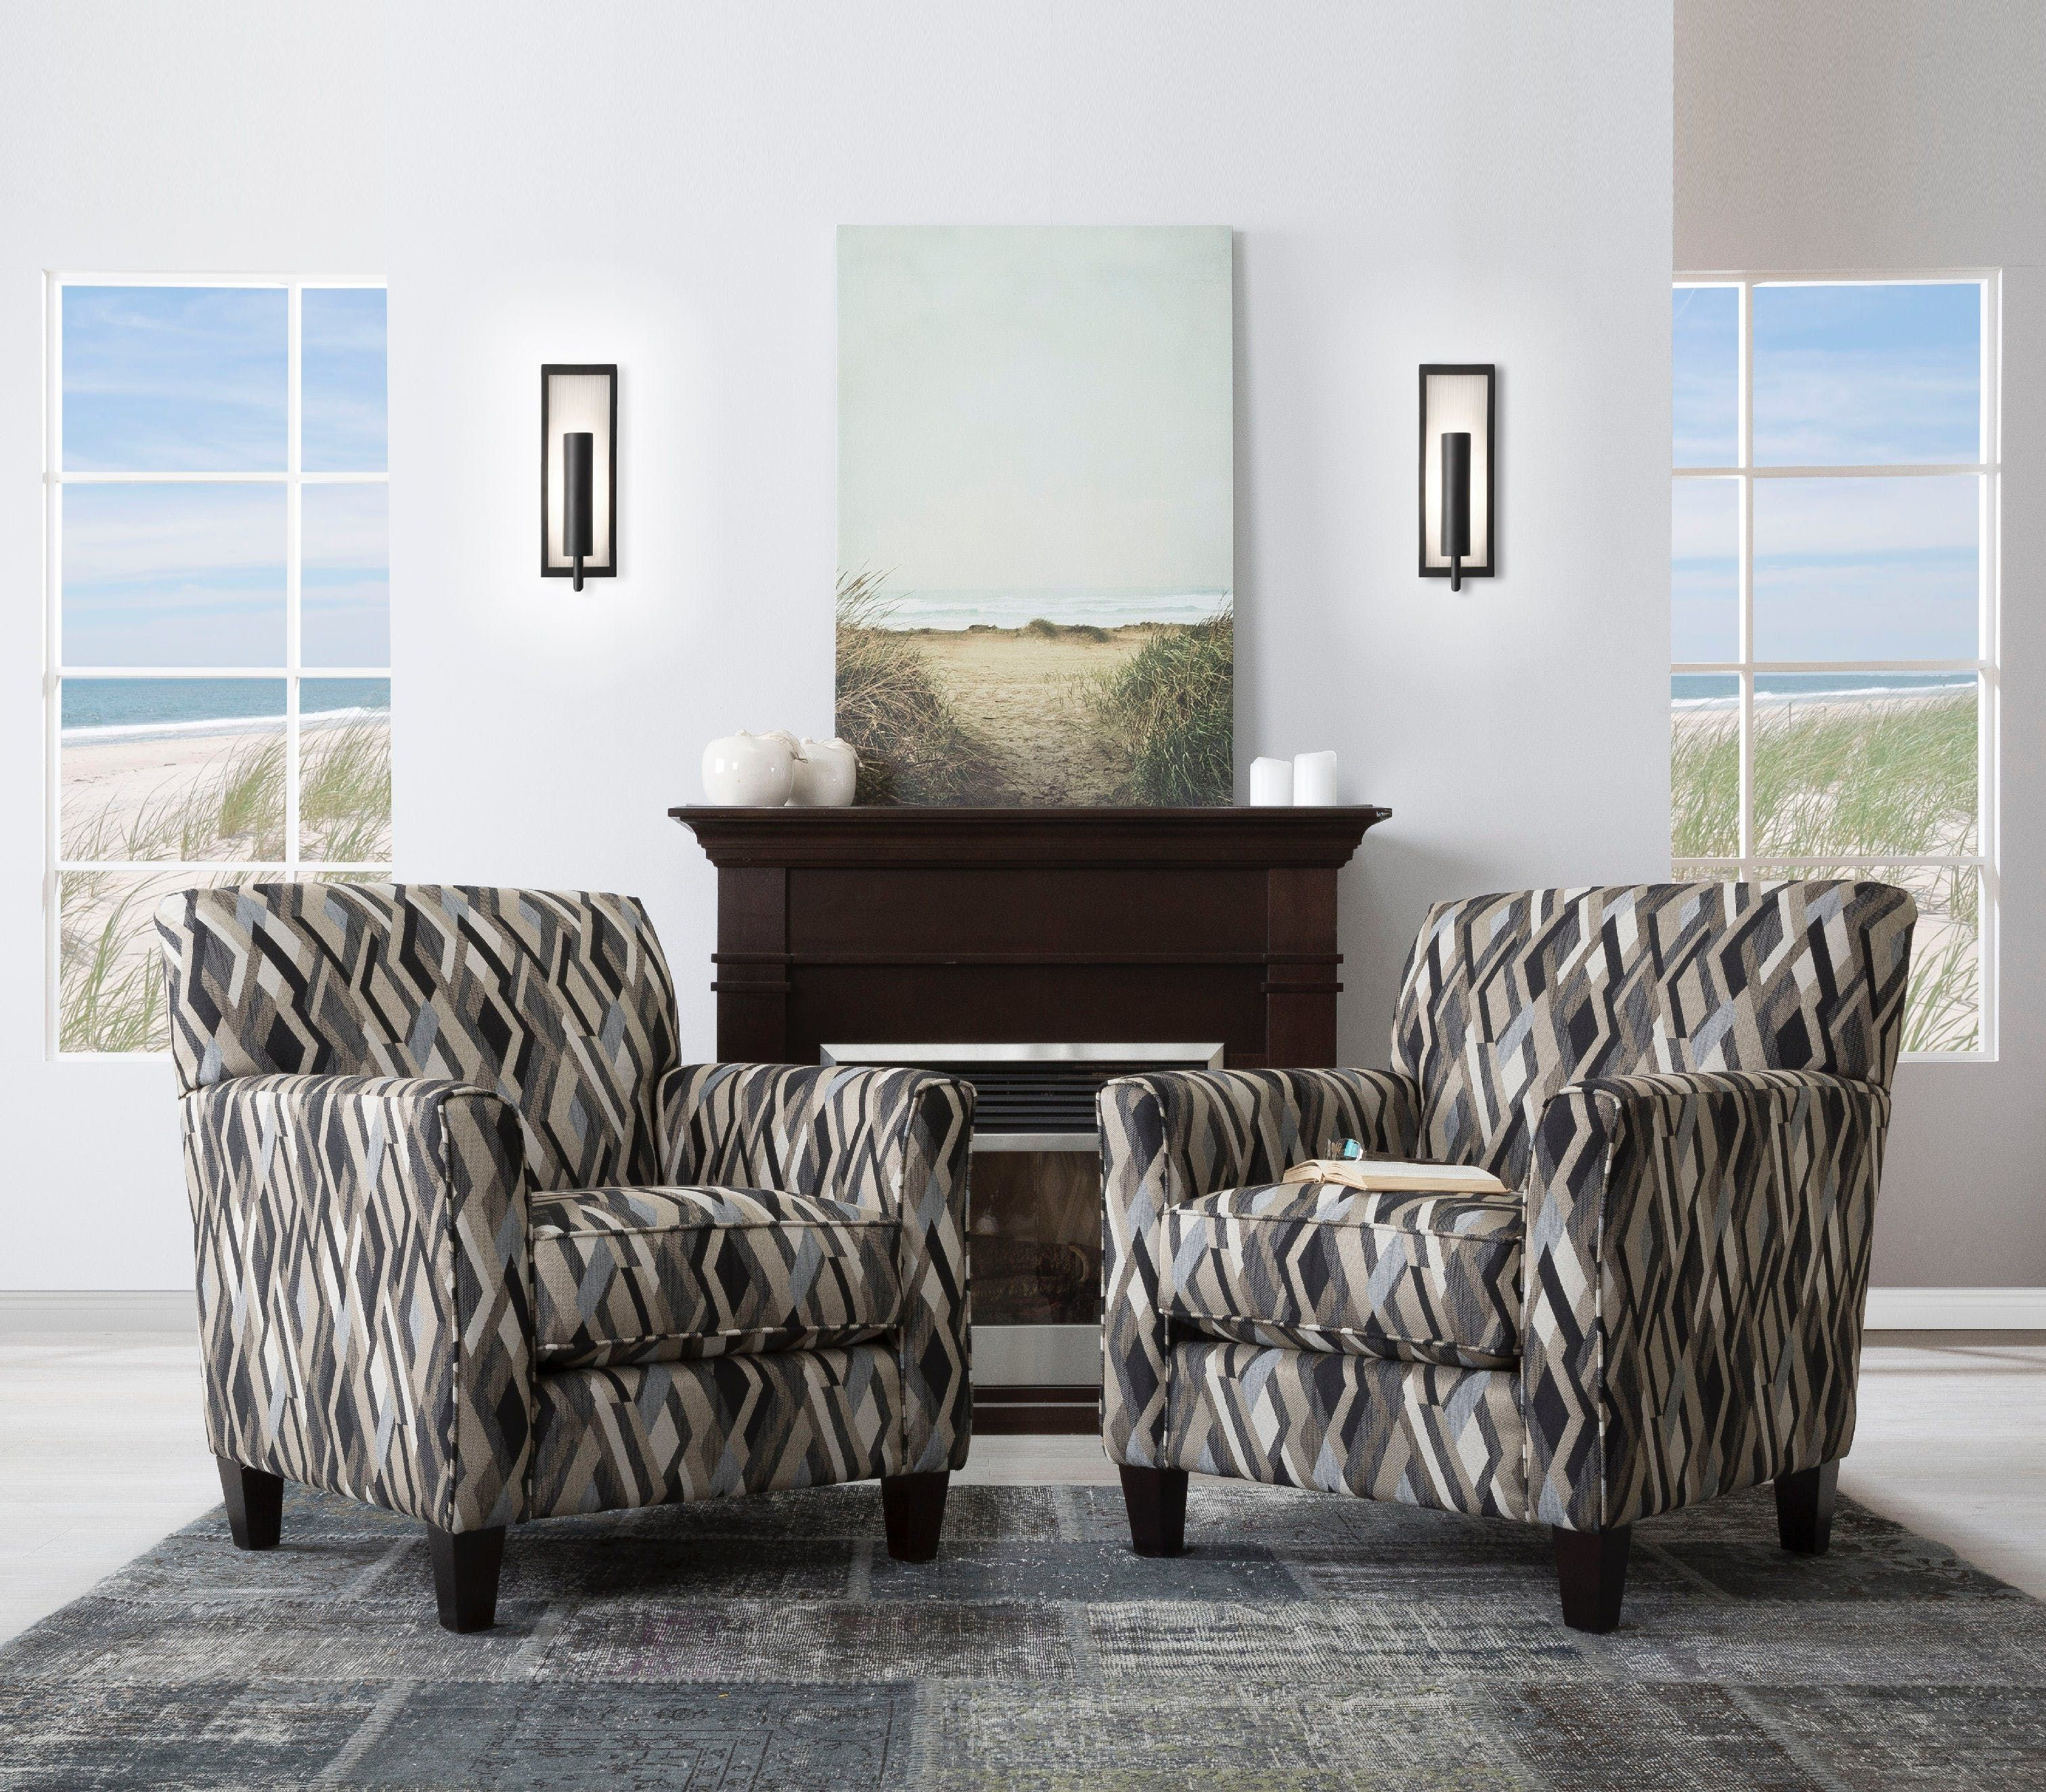 Decor-Rest 7 Chair  Arm chairs living room, Decor, Chair